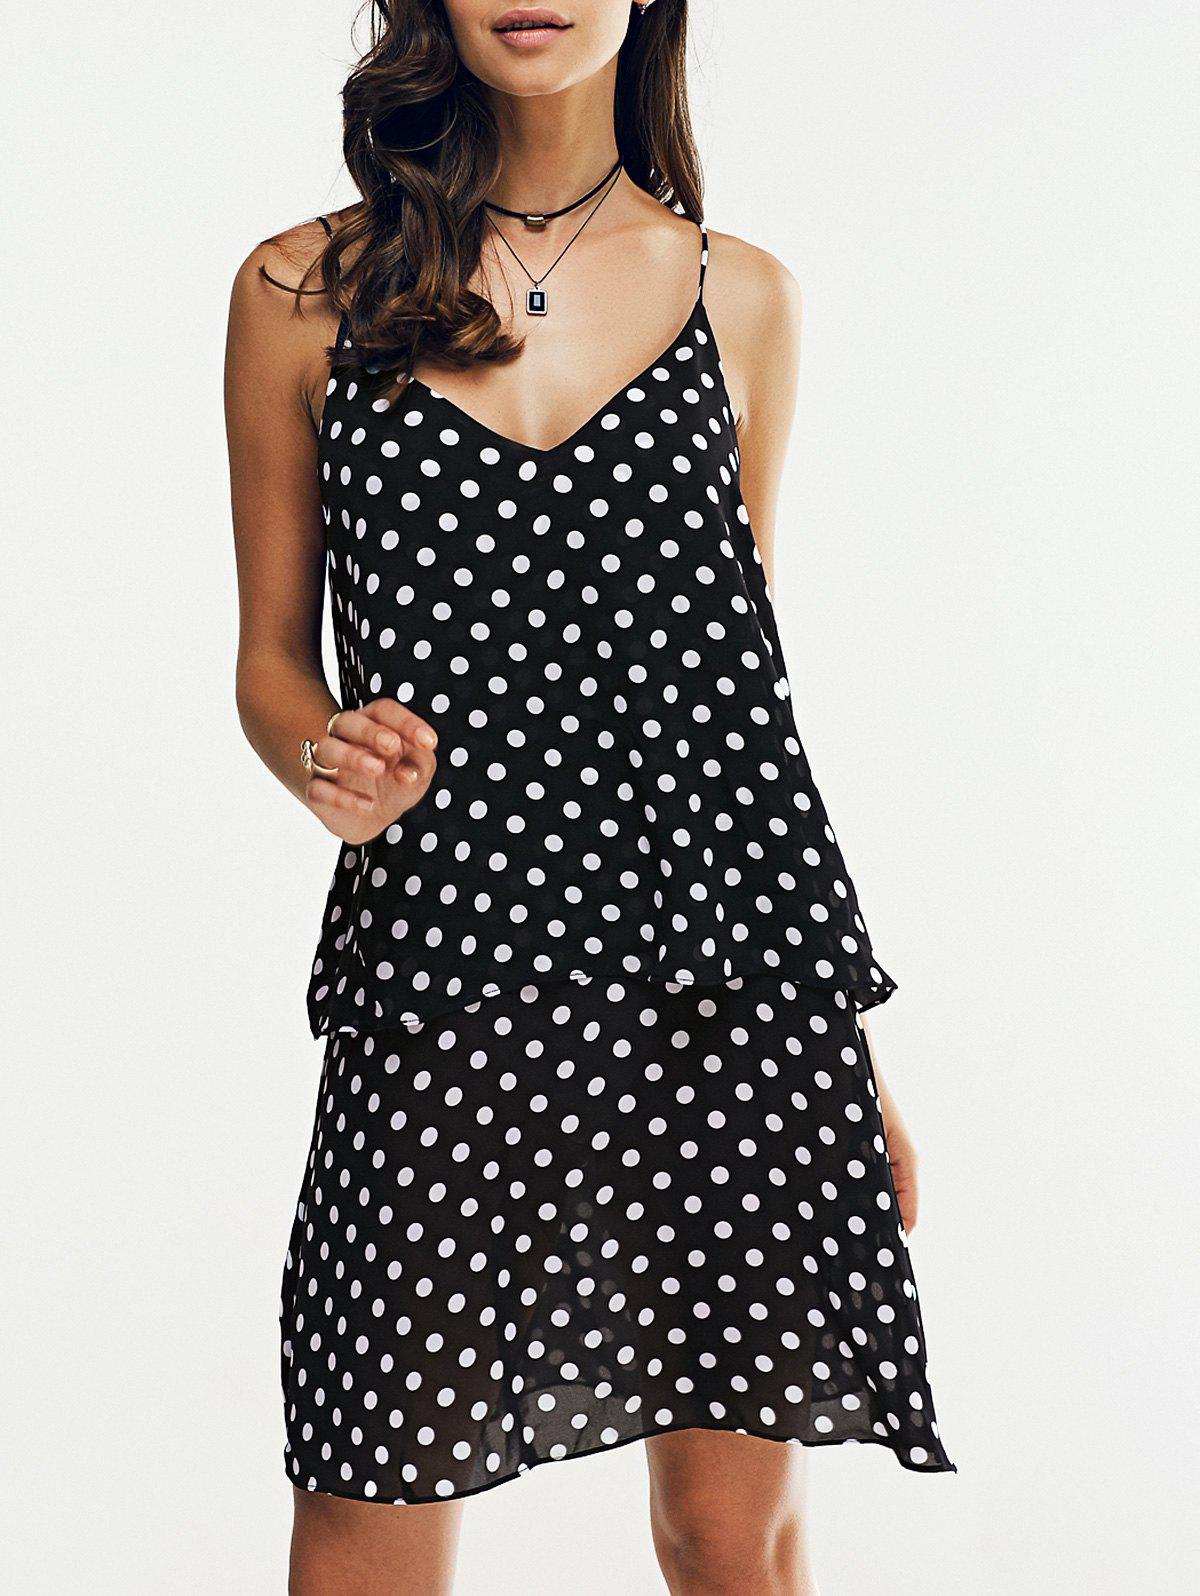 Fashionable V-Neck Spaghetti Strap Printing Flounce Dress For Woman - WHITE/BLACK XL